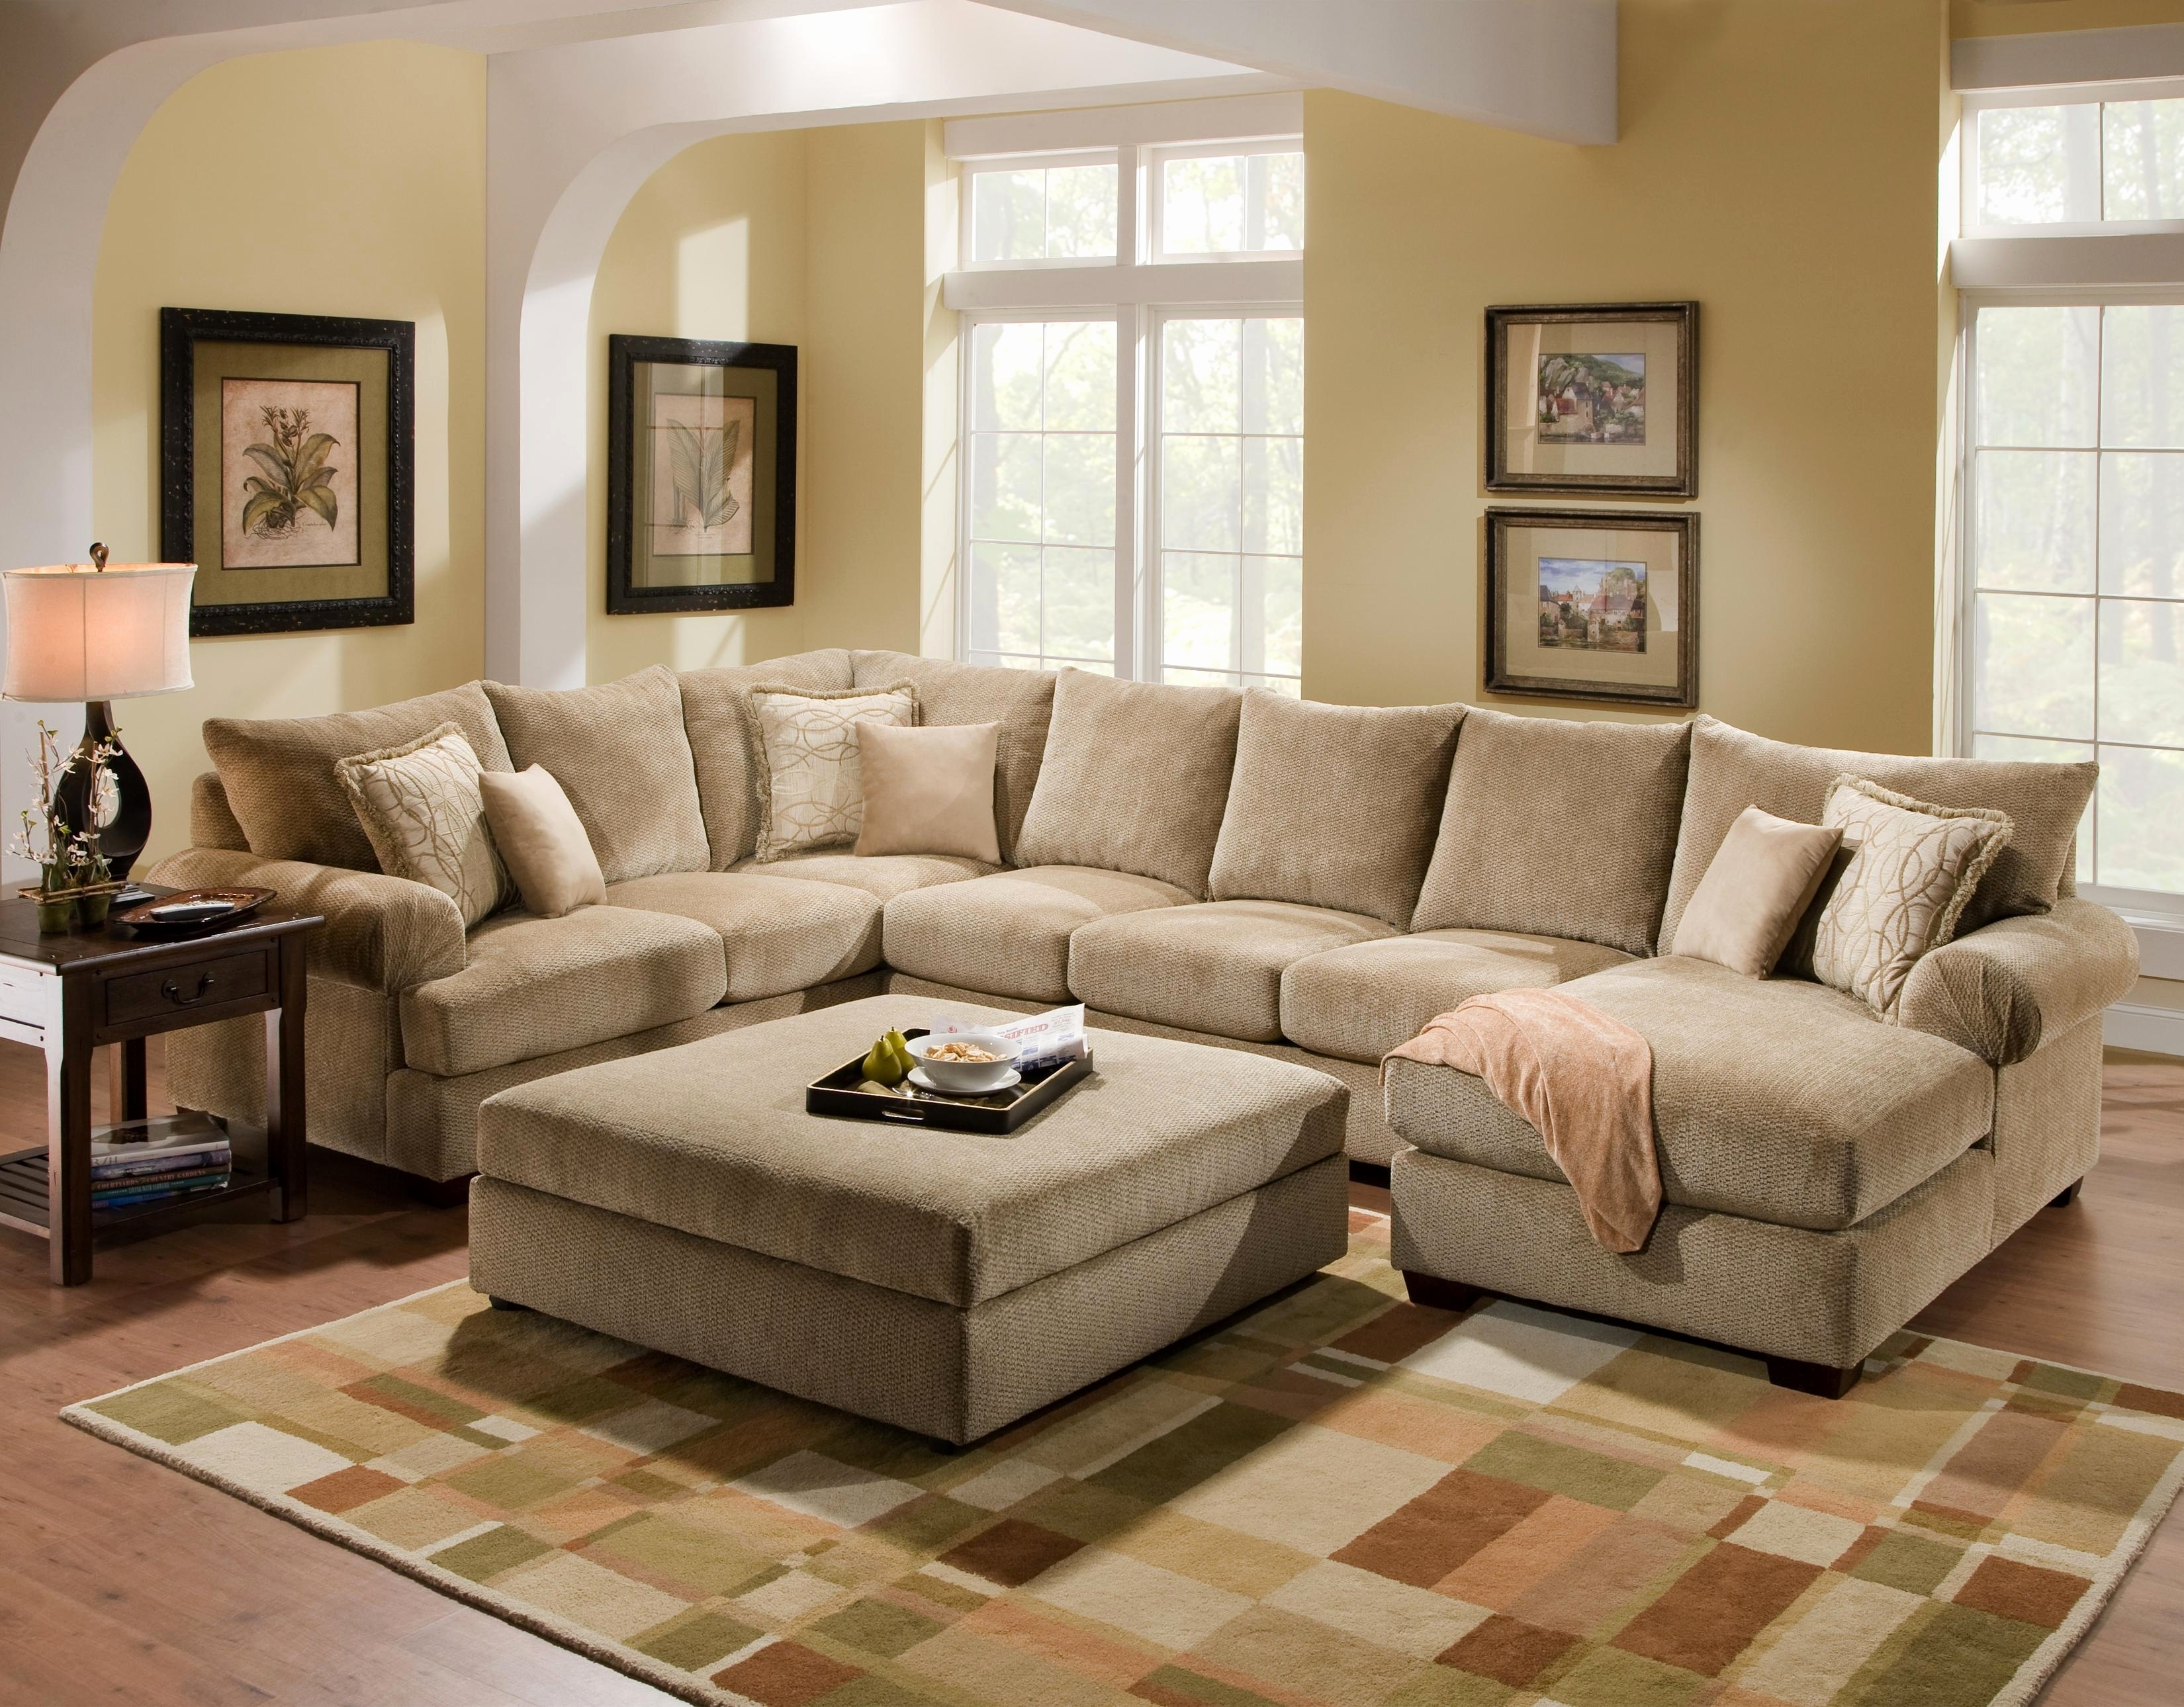 Sectional Sofa Lancaster Pa | Functionalities With Regard To Harrisburg Pa Sectional Sofas (View 6 of 10)